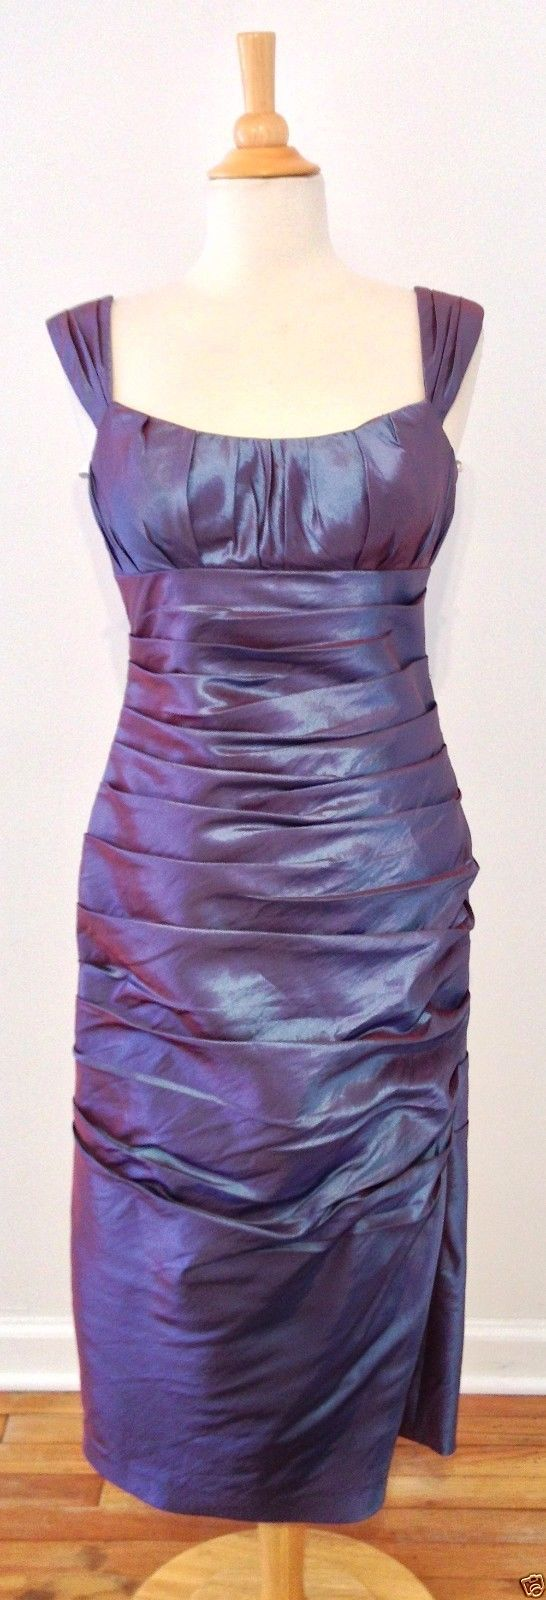 Bill Levkoff Purple Iridescent Formal Cocktail Pencil Dress 10 | eBay - Recycled Couture #Fashion #Apparel #Shopping #eBay